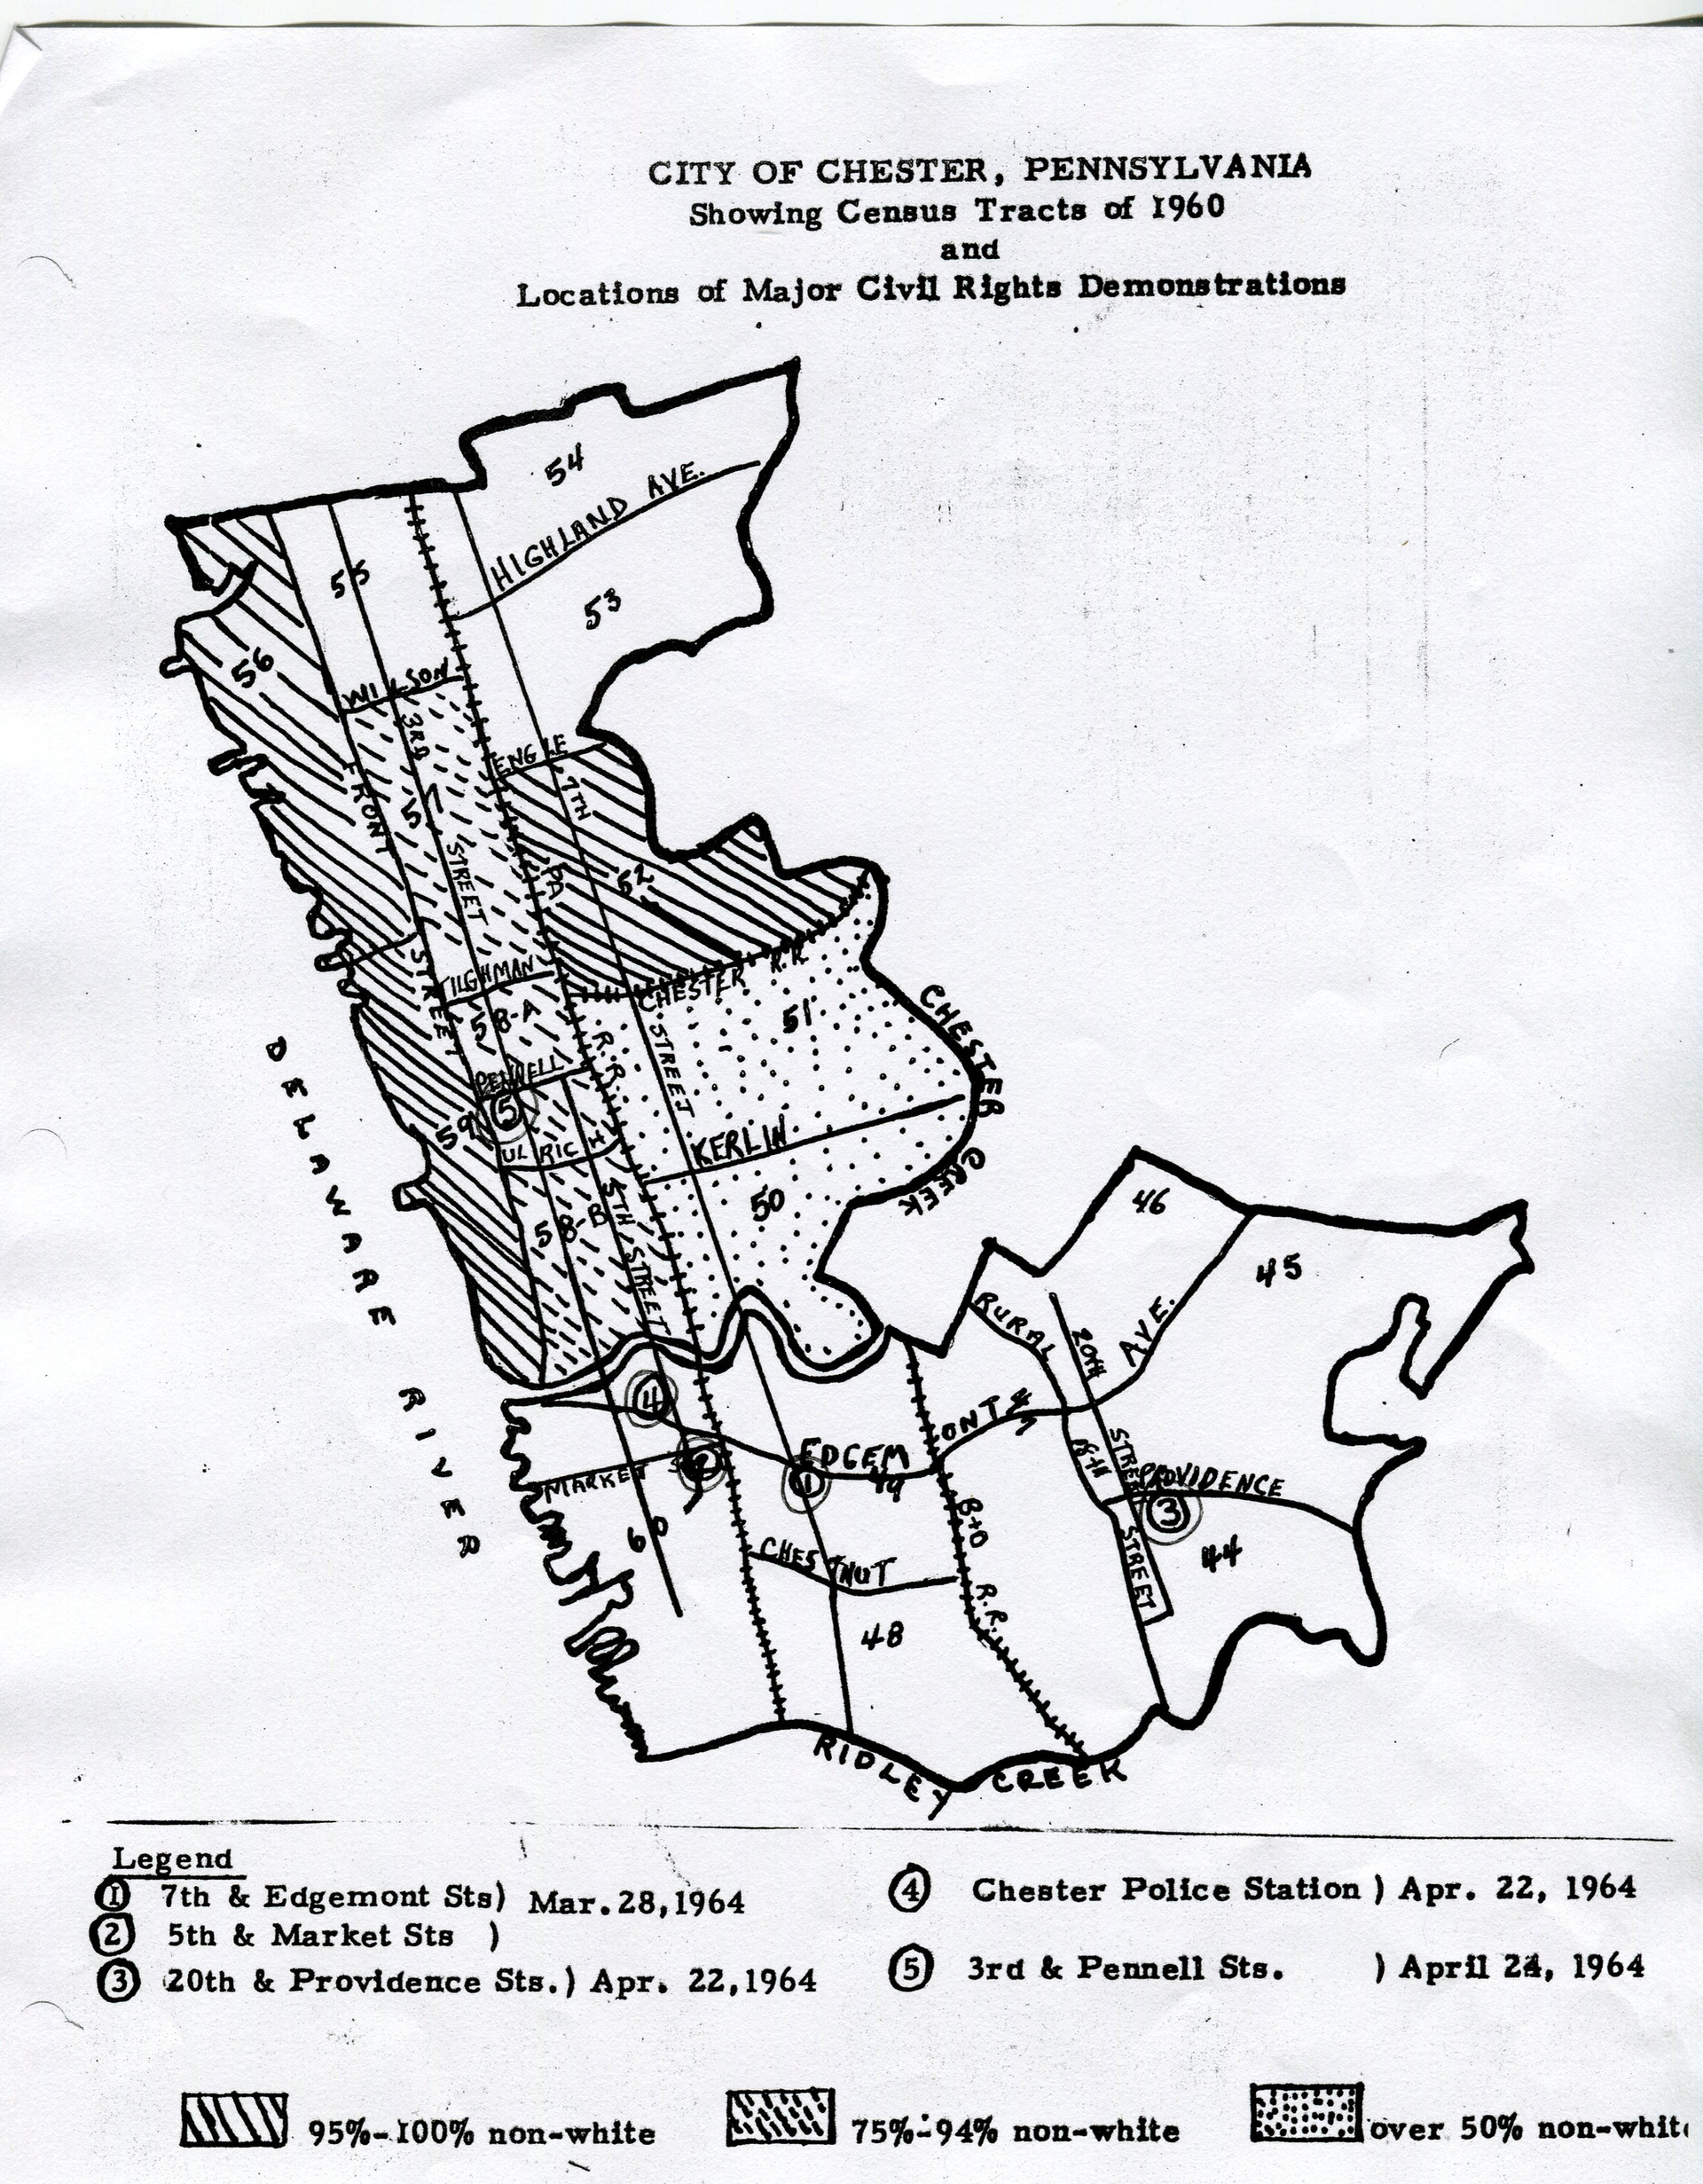 City of Chester Civil Rights Demonstrations Map 1964